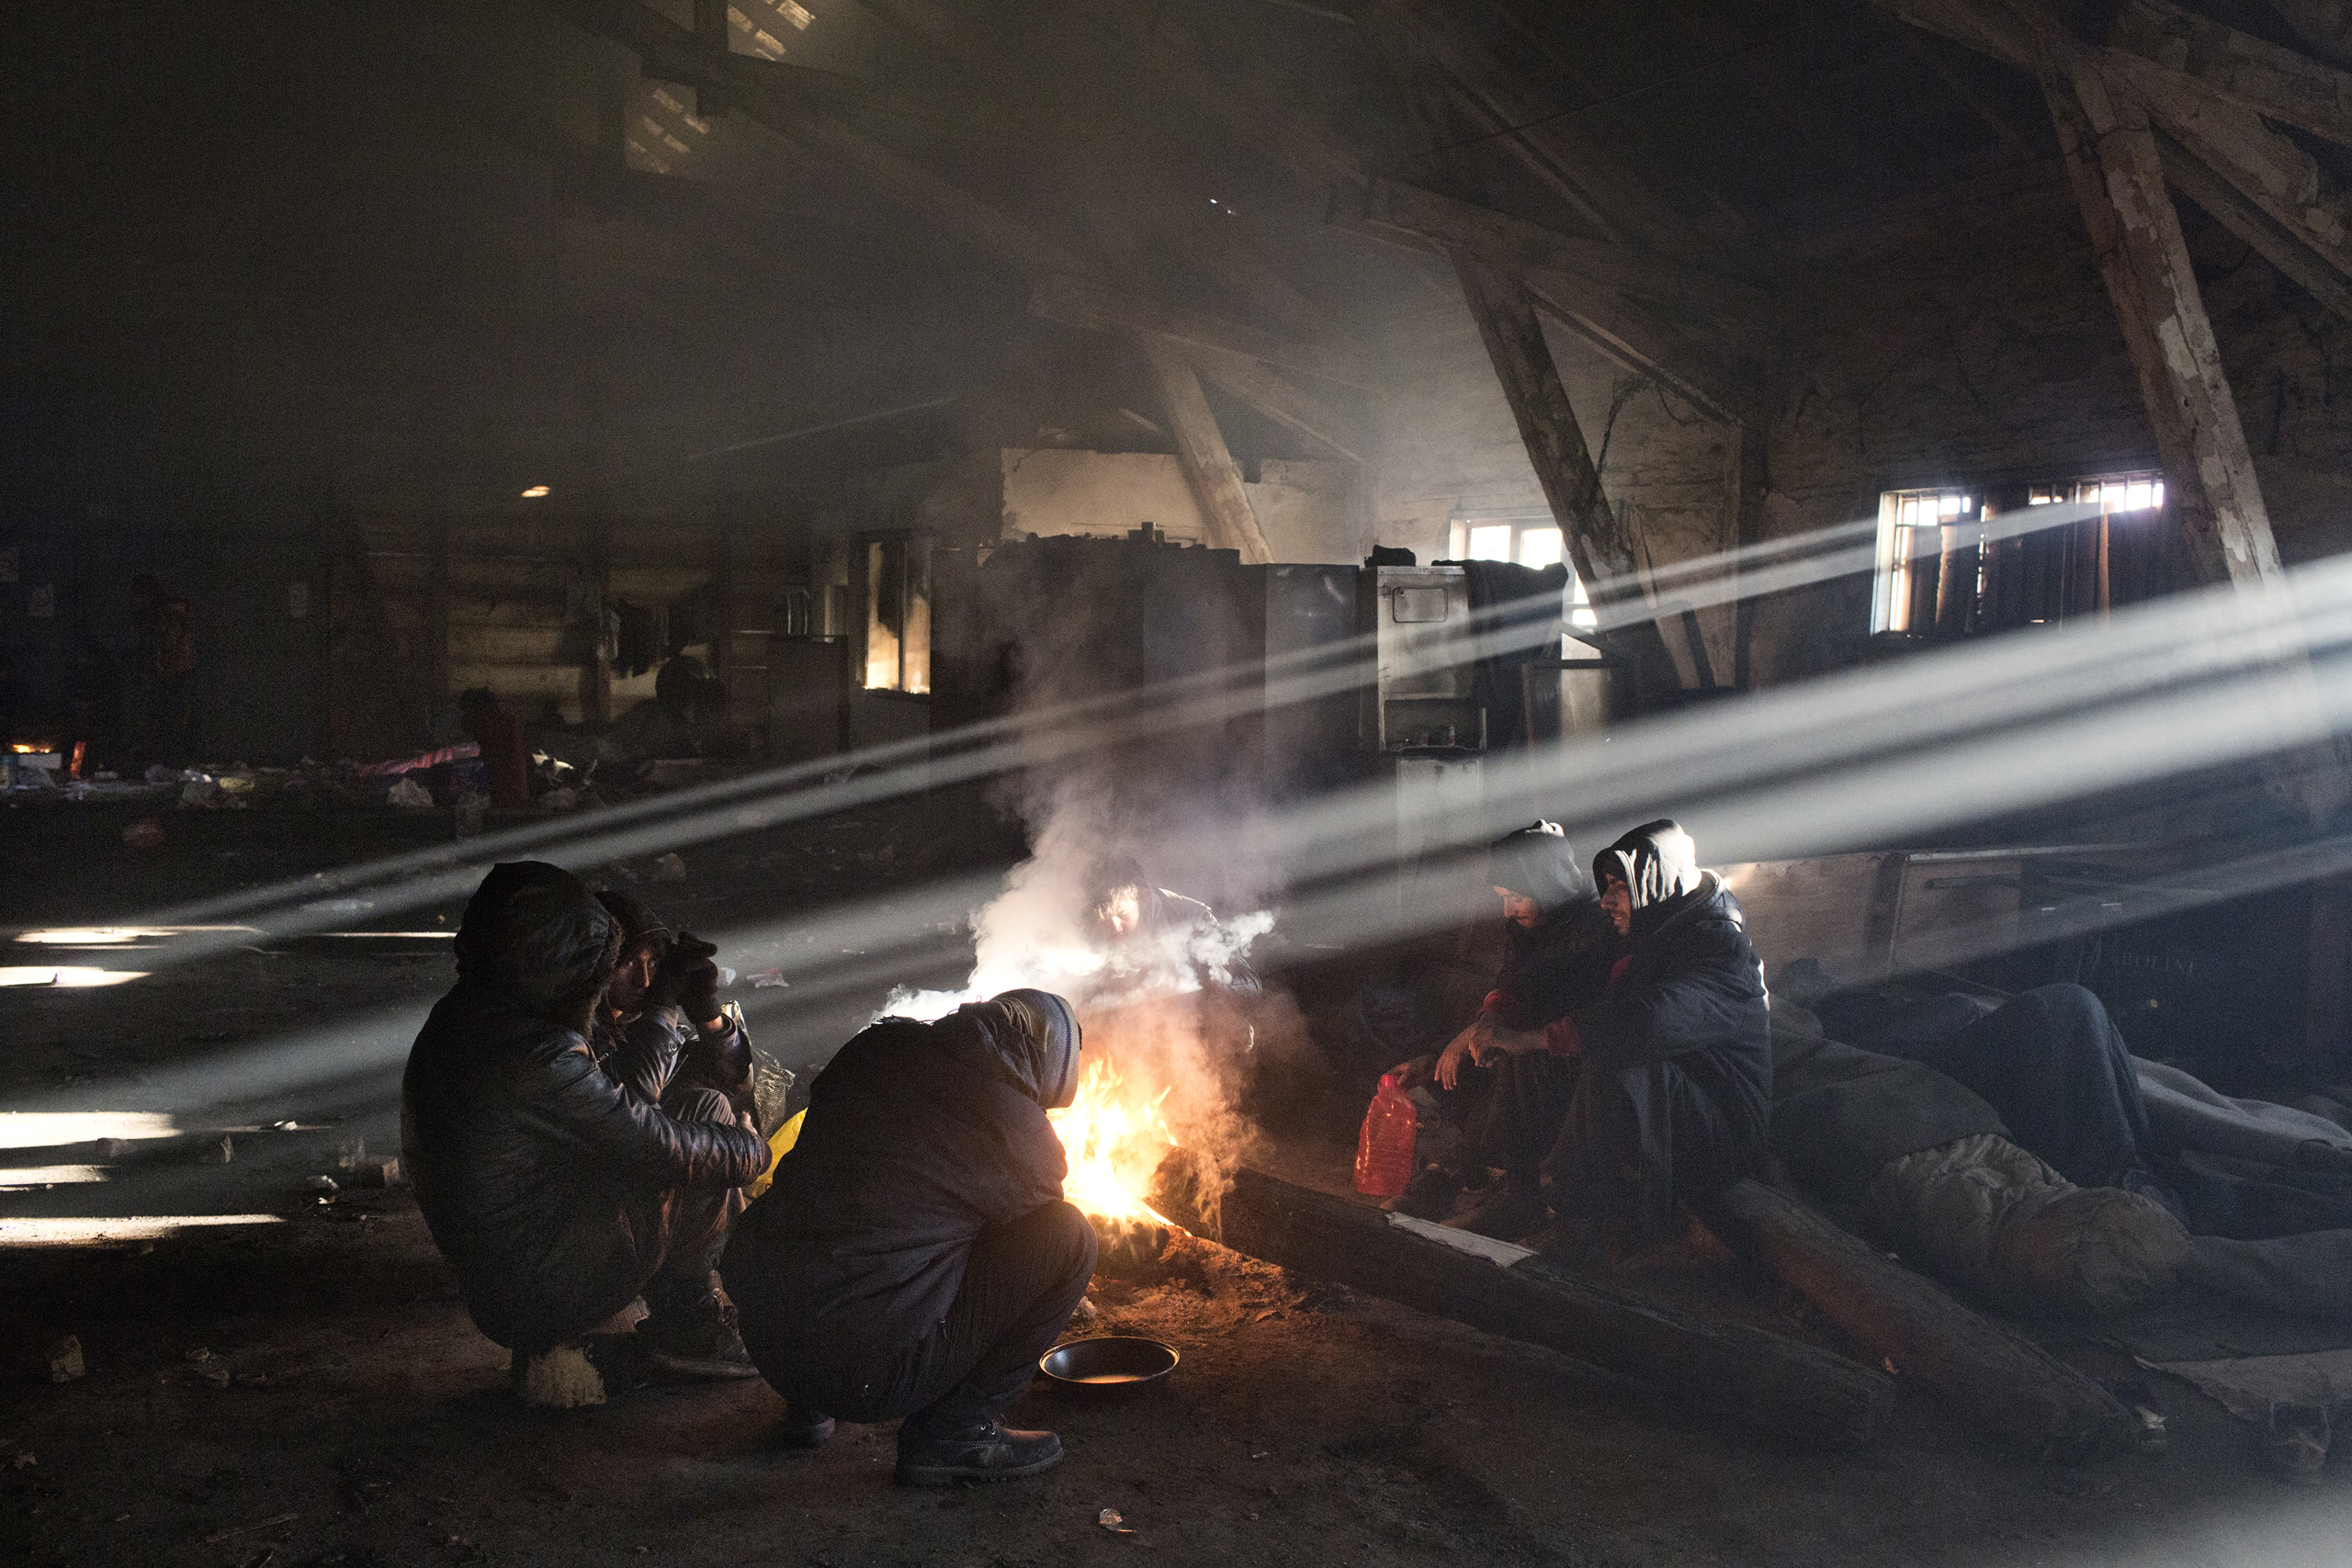 A group of unaccompanied minors inside an abandoned building in Belgrade, Serbia, where they wait for smugglers to help them enter the EU.